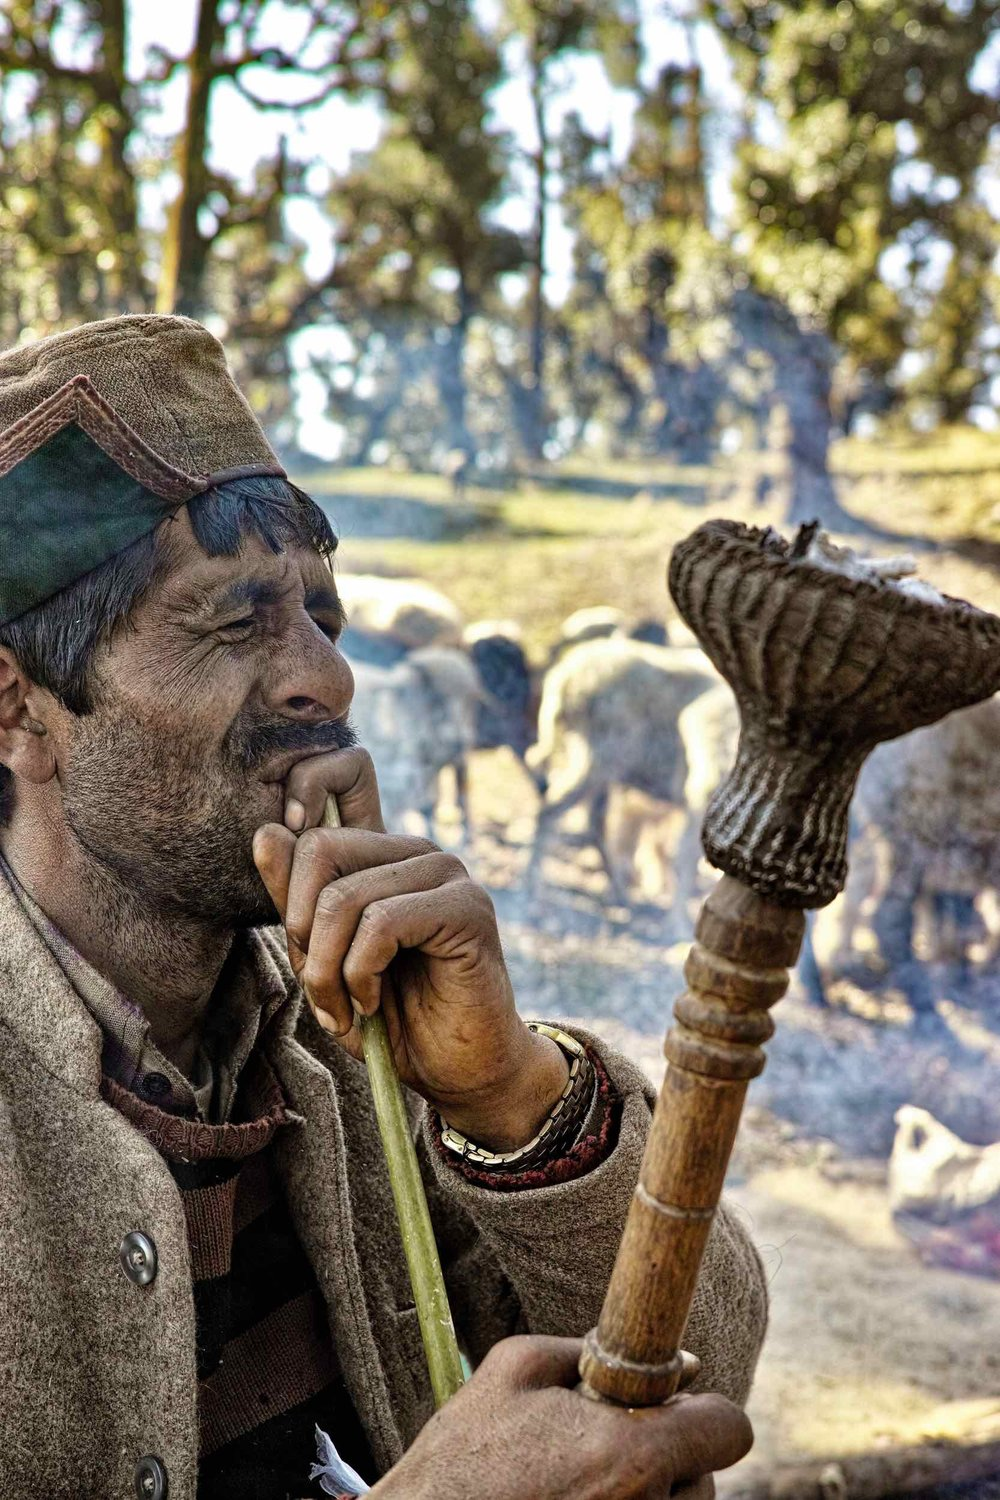 A Gaddi smoking a Hookah at Nag Tibba